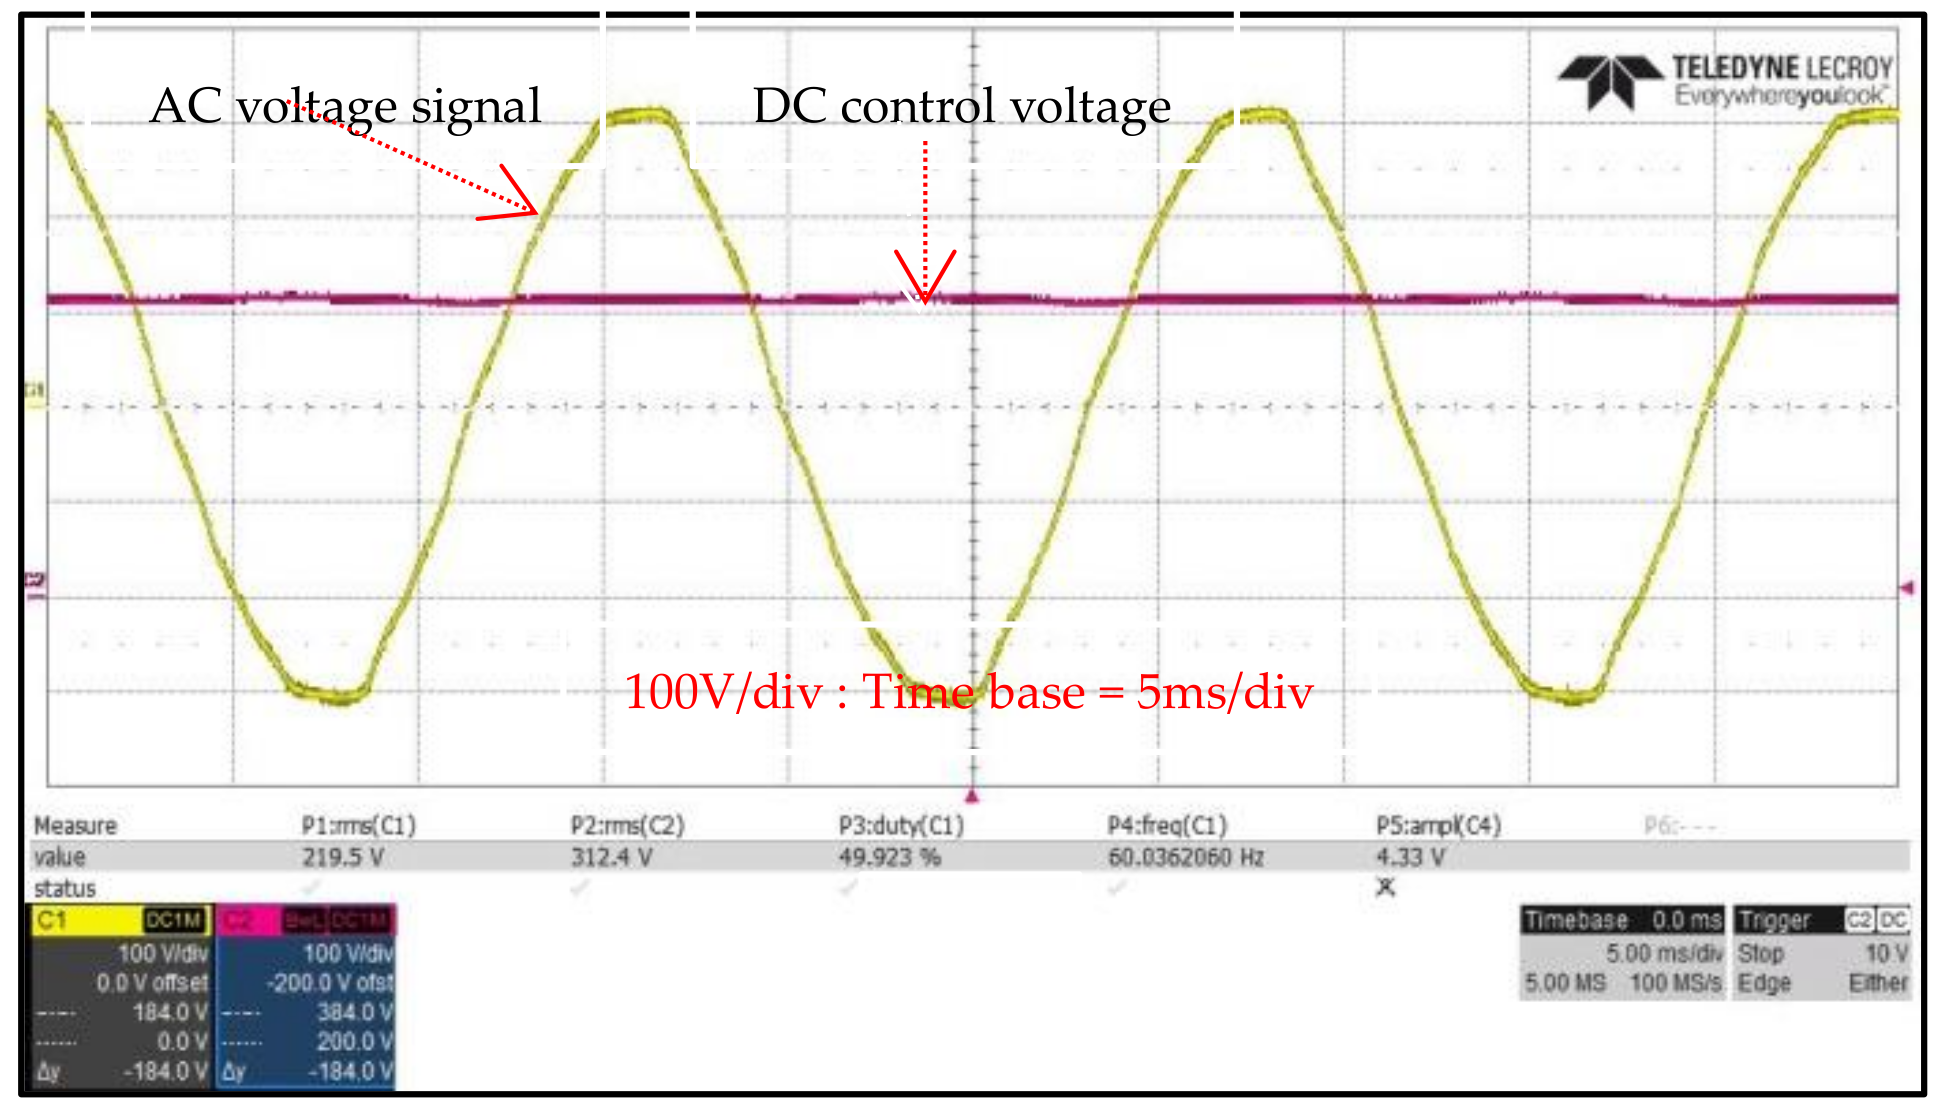 Electronics | Free Full-Text | 4T Analog MOS Control-High Voltage